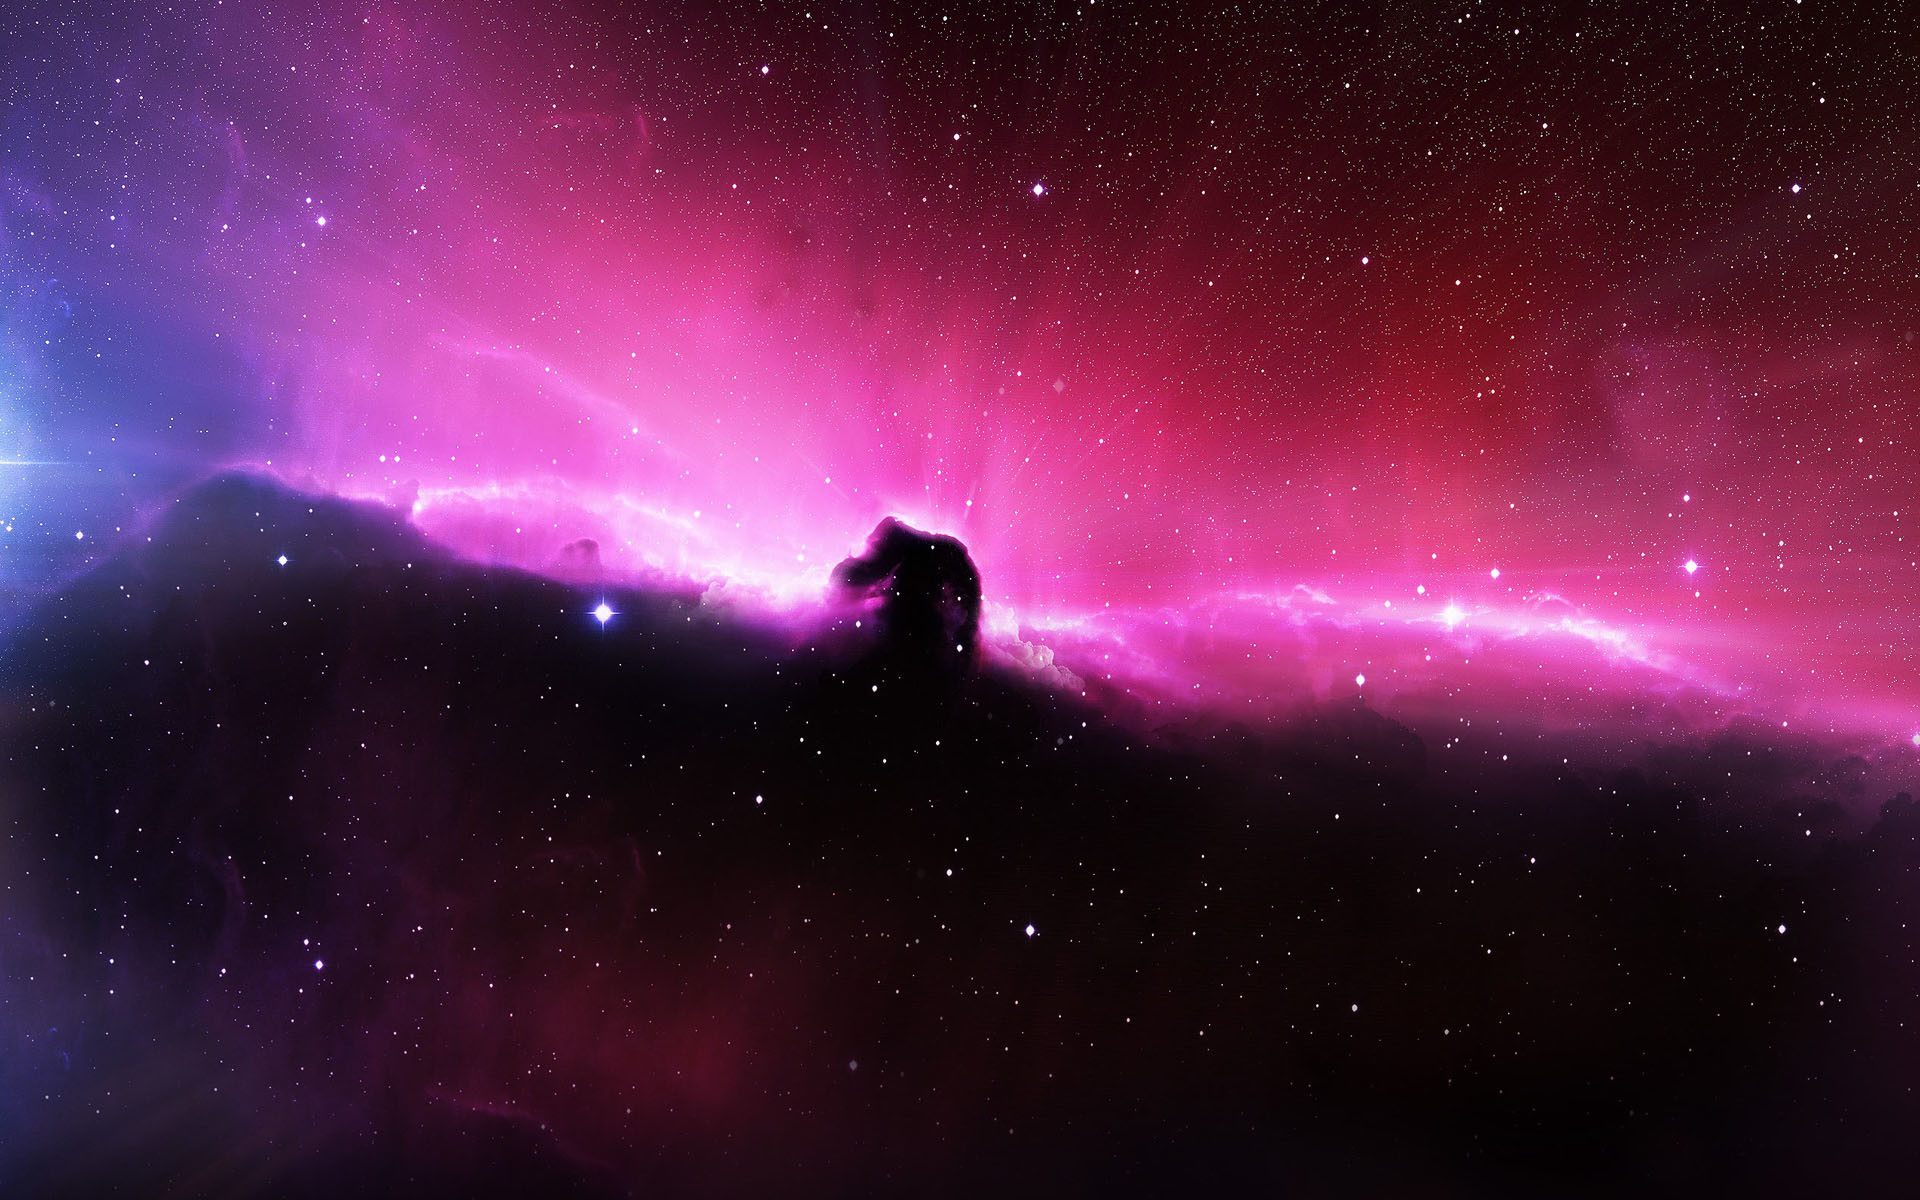 Purple Bright Star Wallpaper colorful desktop background | Abstract .